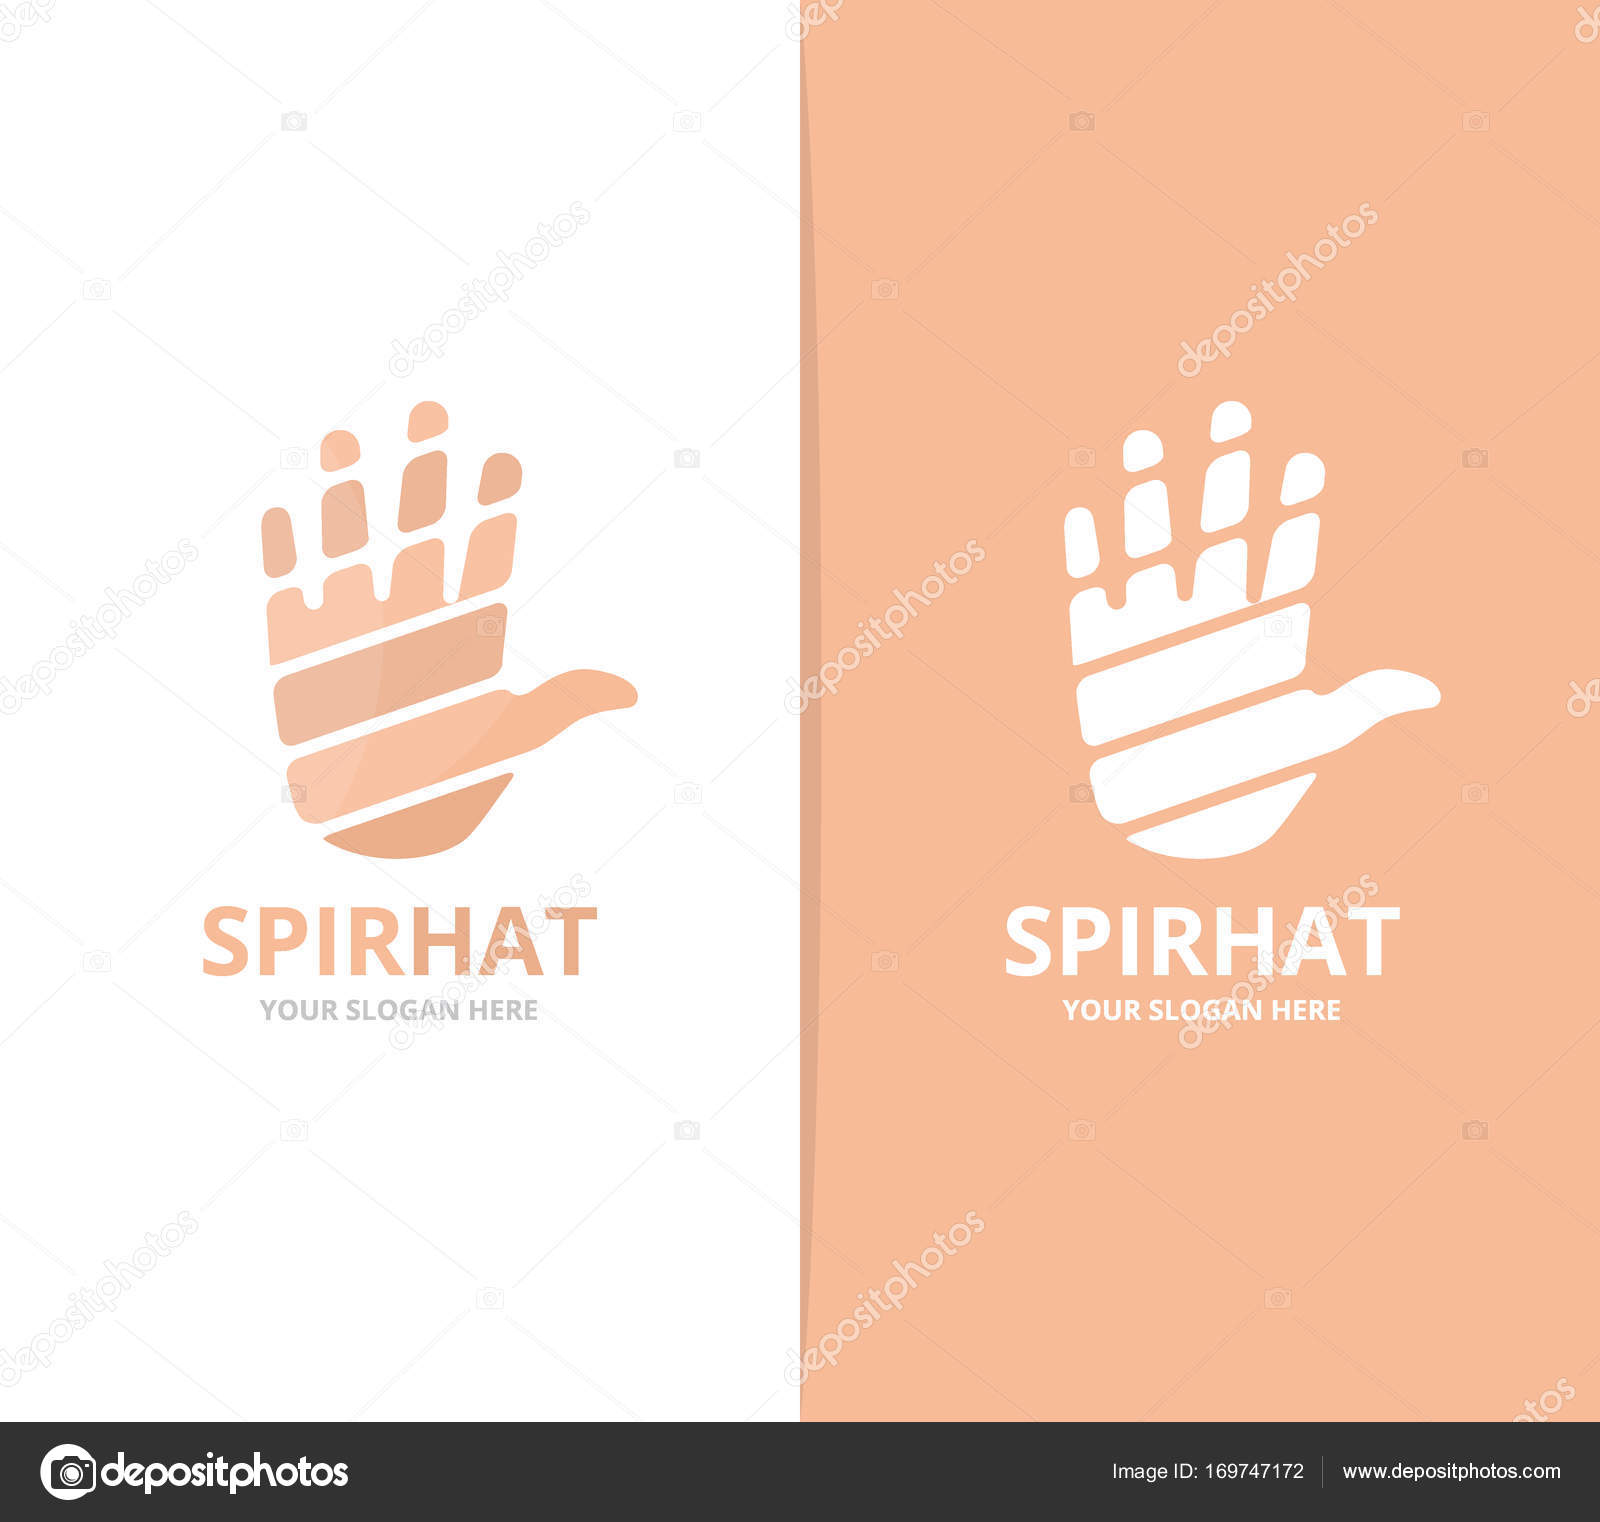 vector of hand logo combination arm symbol or icon unique support